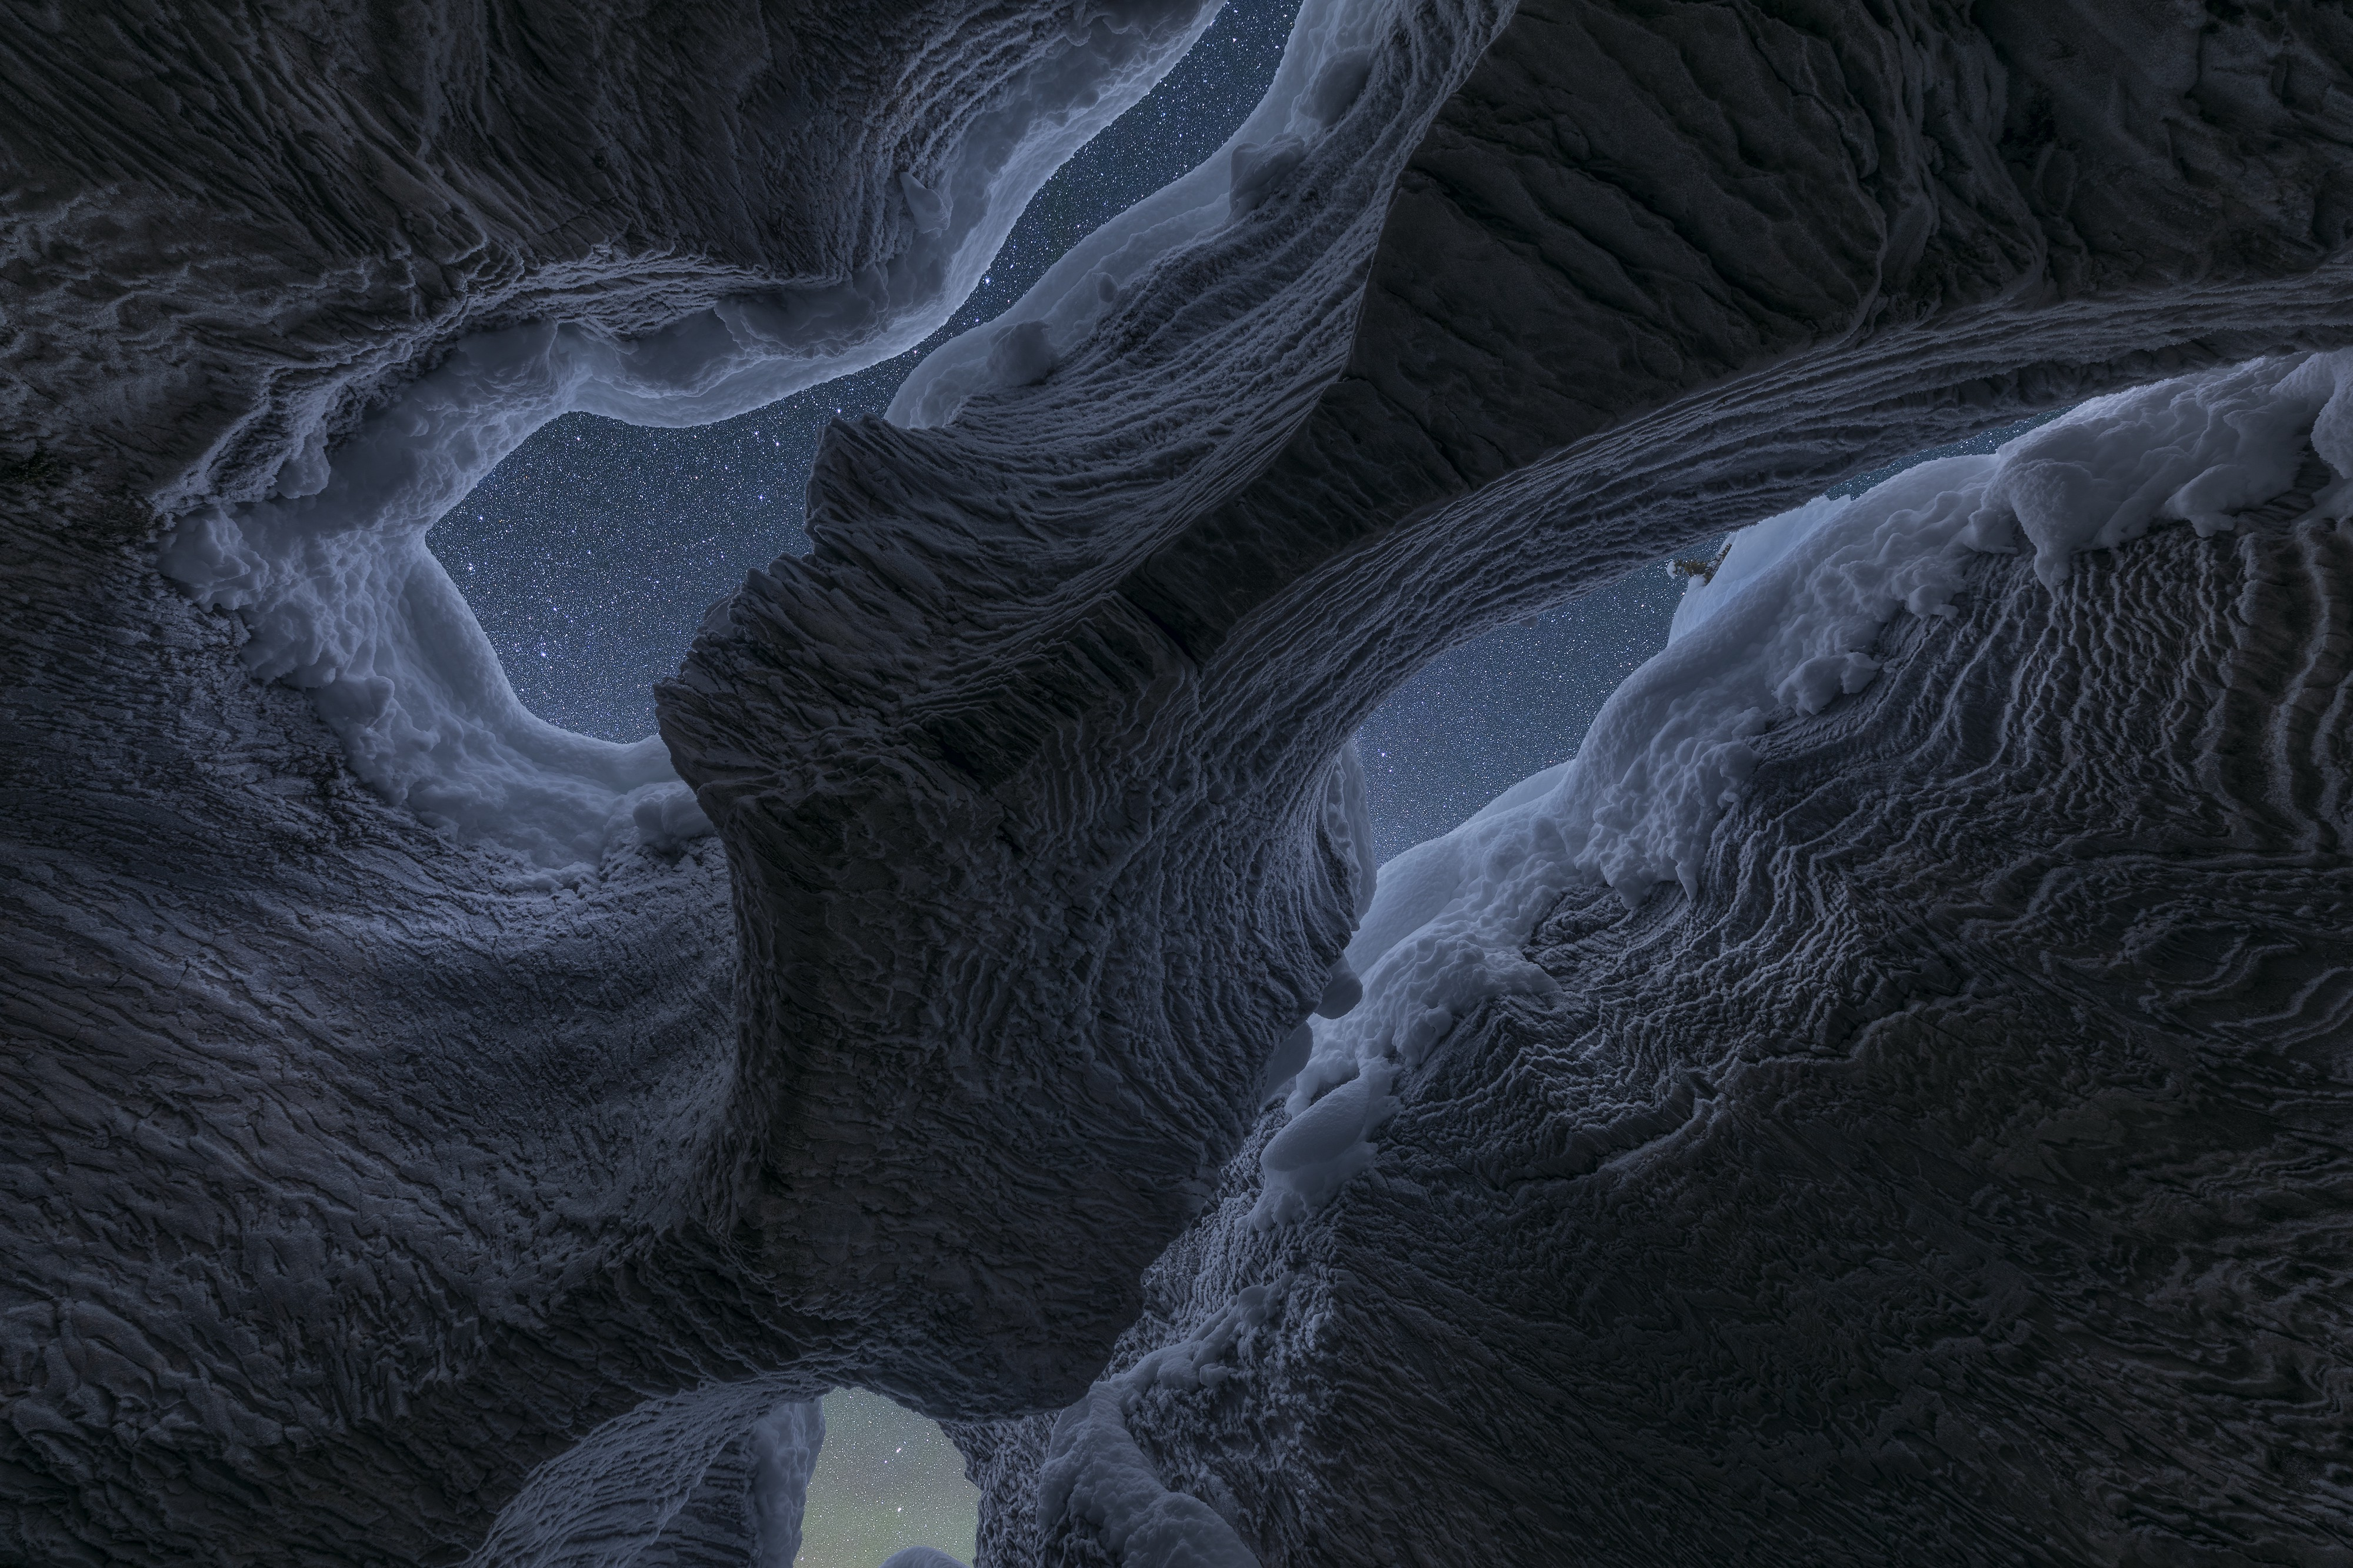 A night-lit shot of the Rocky Mountains, showing a cave texture that looks like water or art